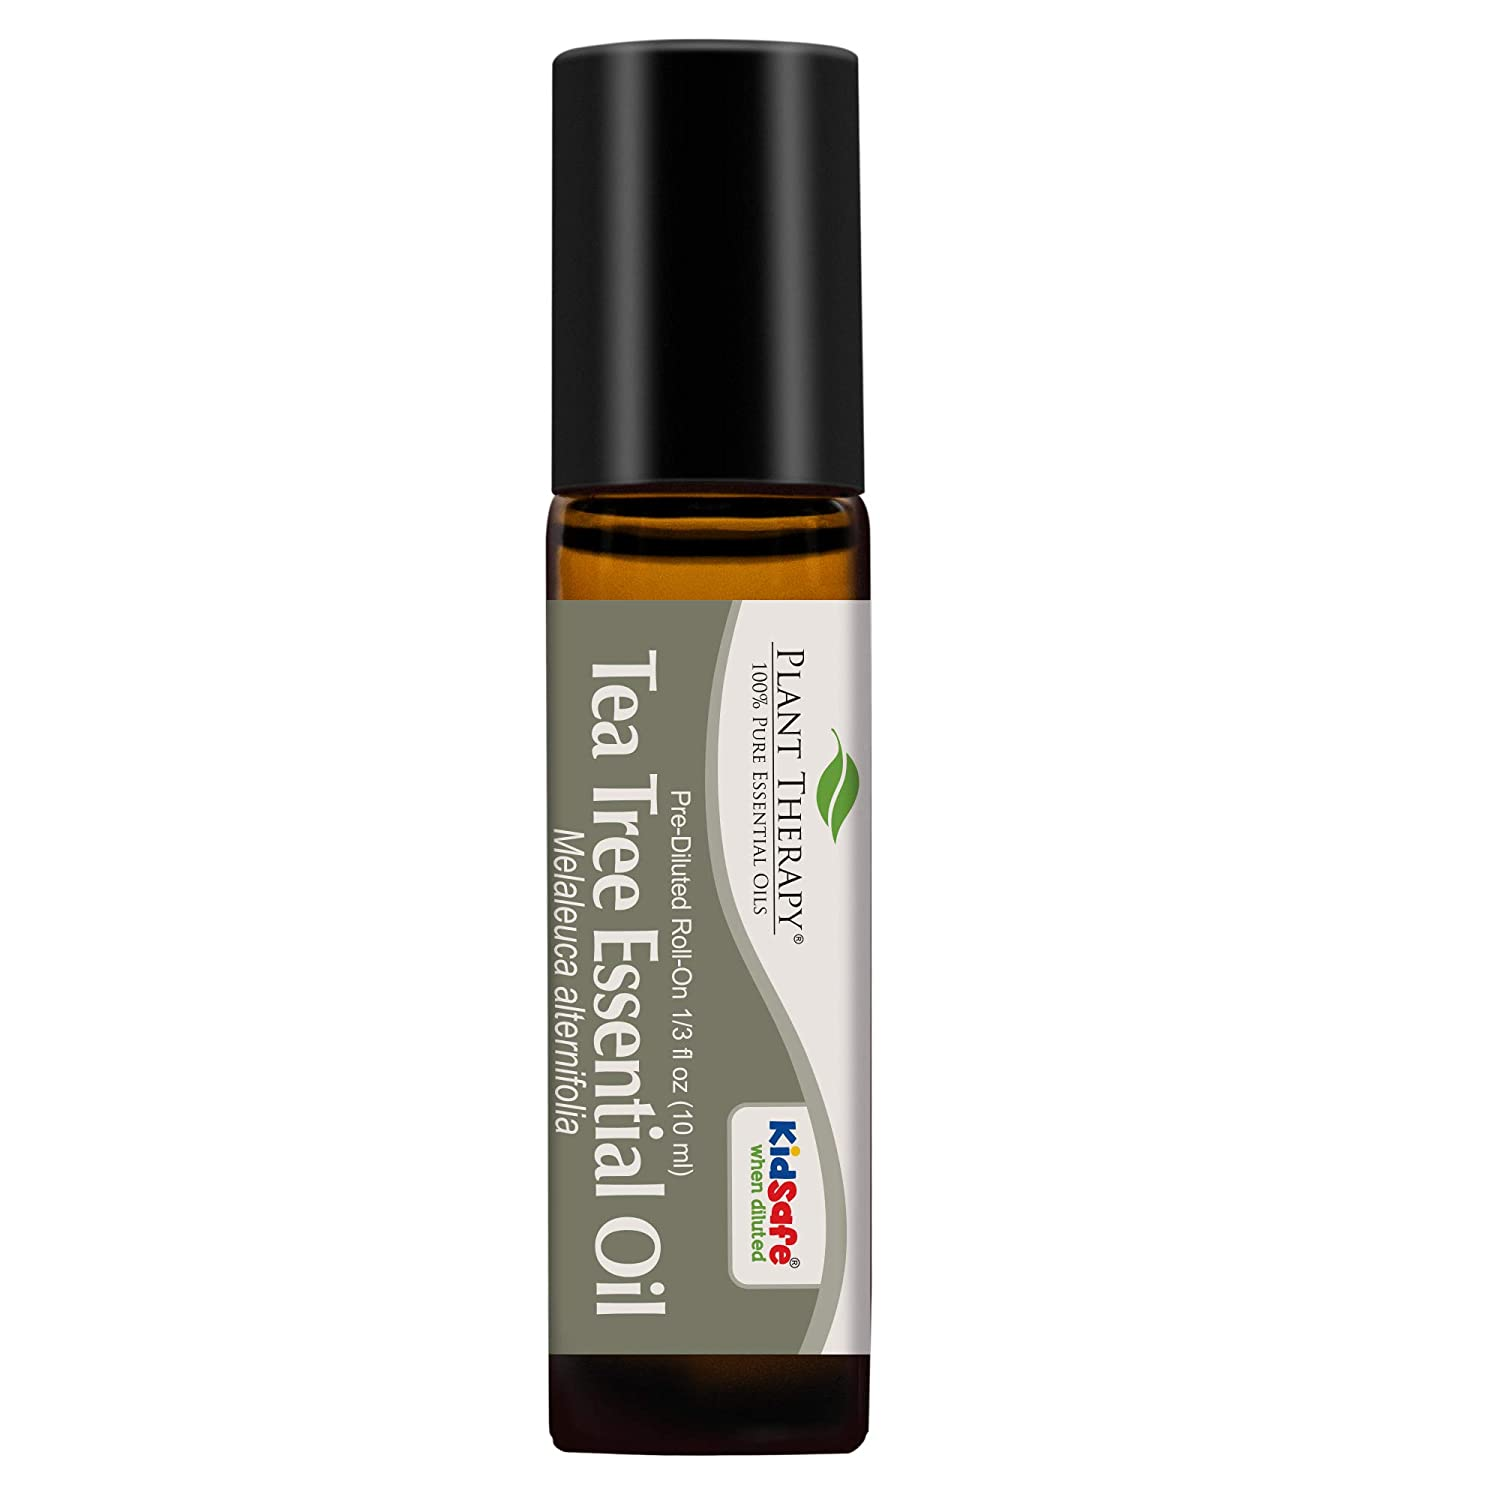 Plant Therapy Tea Tree Essential Oil 100% Pure, Pre-Diluted Roll-On, Natural Aromatherapy, Therapeutic Grade 10 mL (1/3 oz)